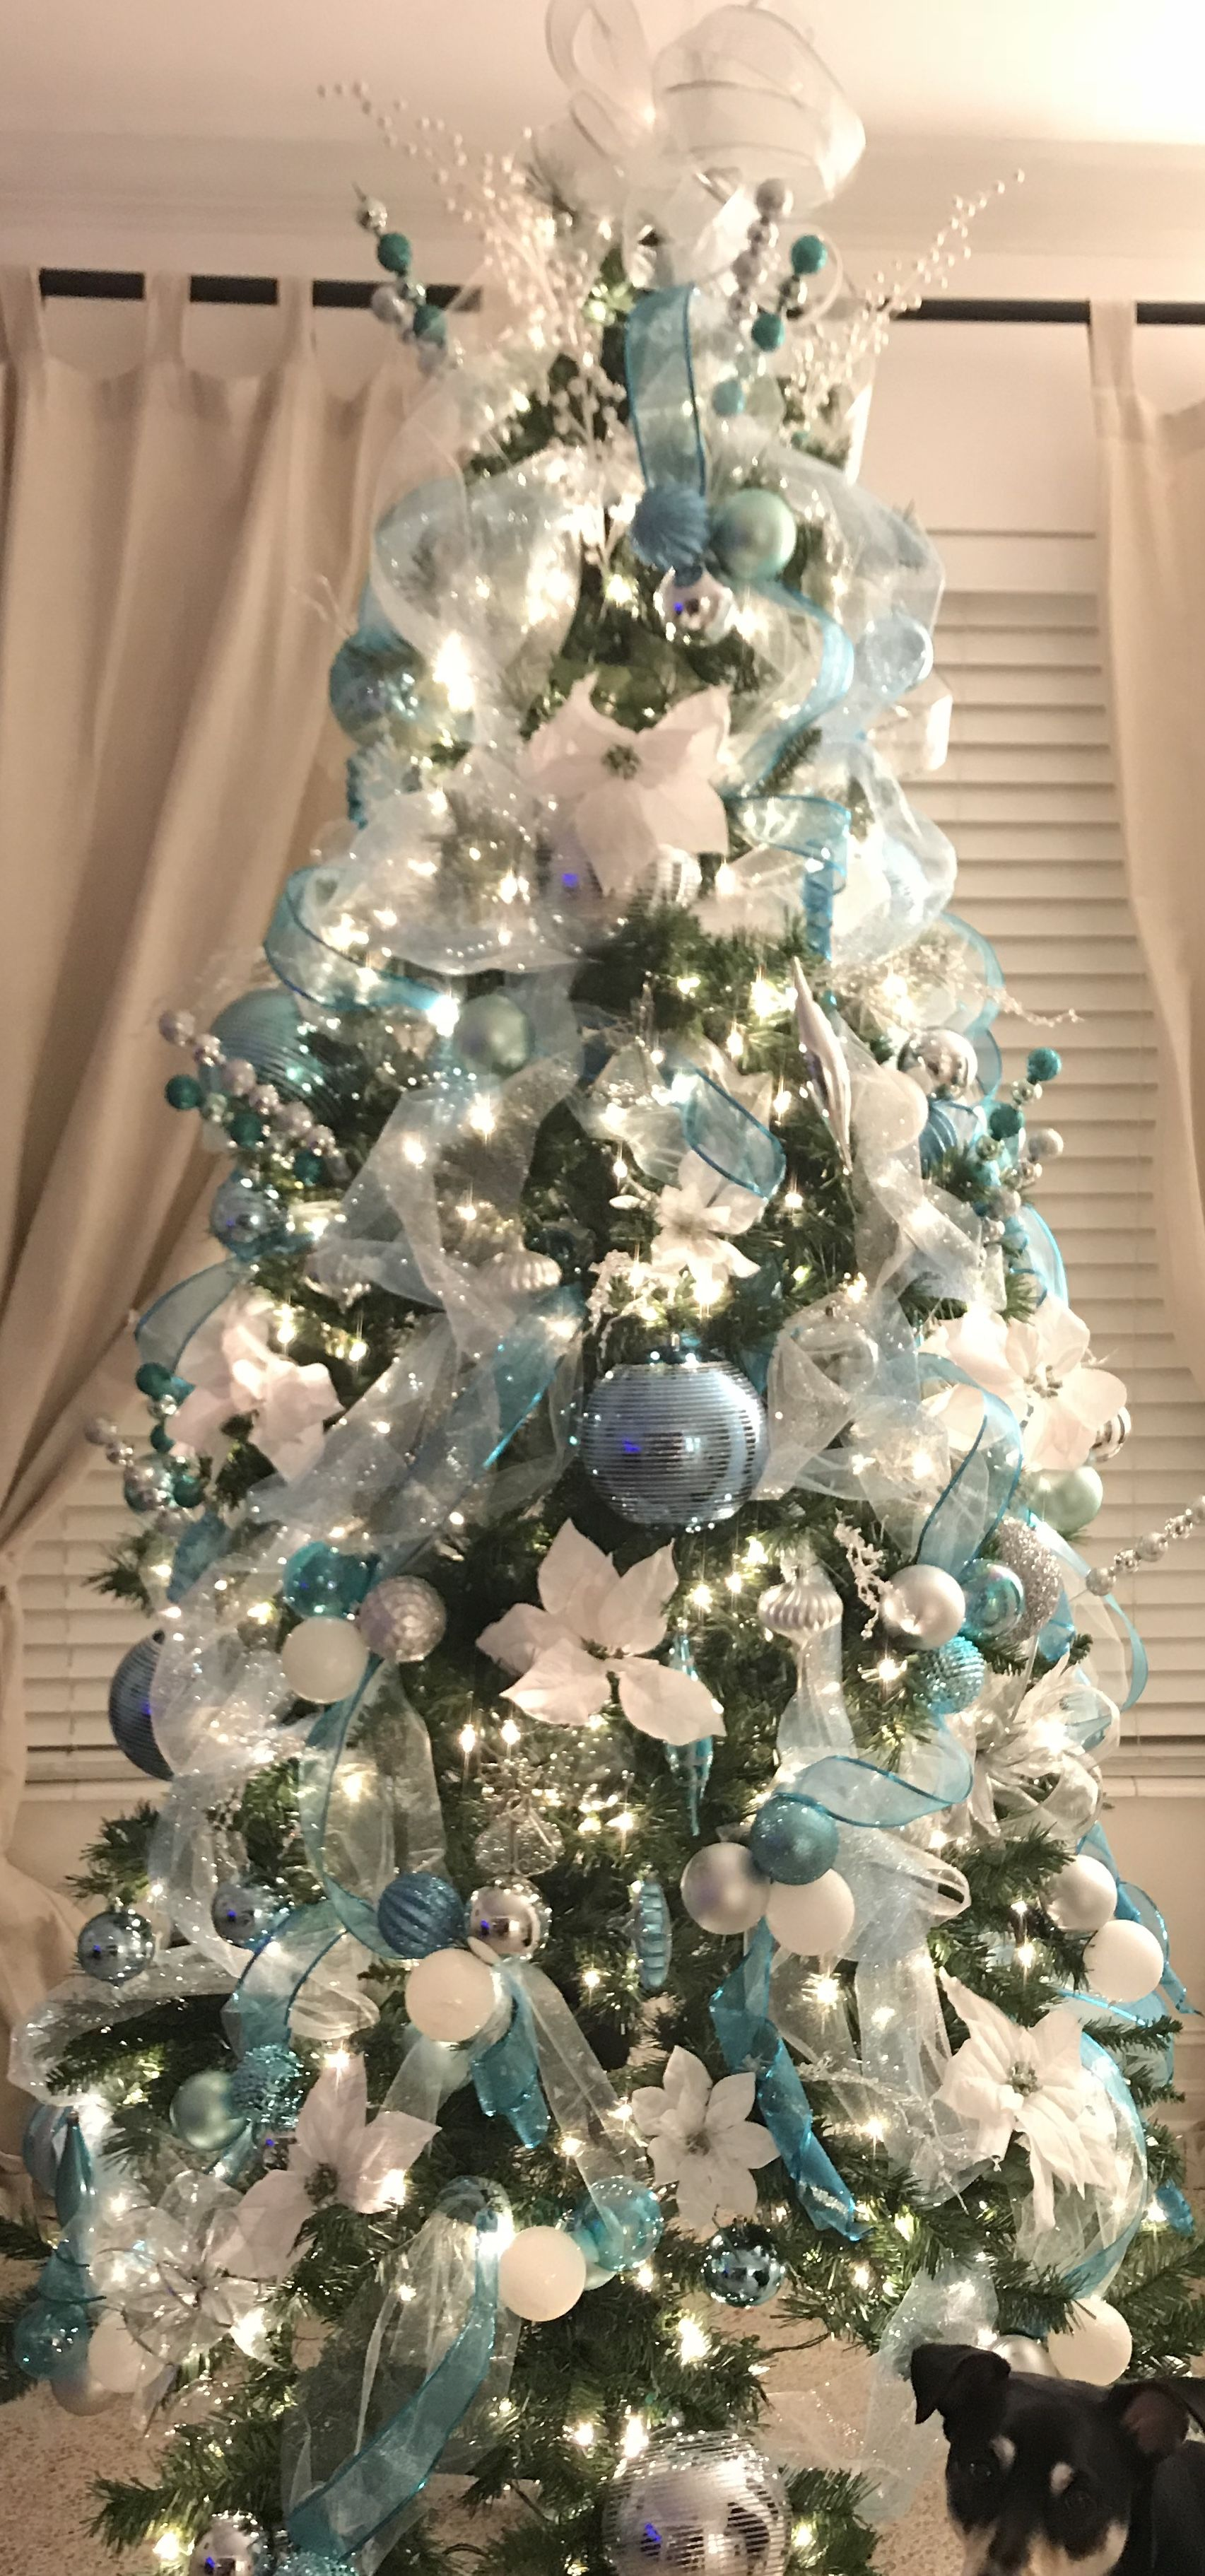 Winter Wonderland Christmas Tree Blue Silver And White Decor Teal Christmas Decorations Blue Christmas Tree Blue Christmas Decor